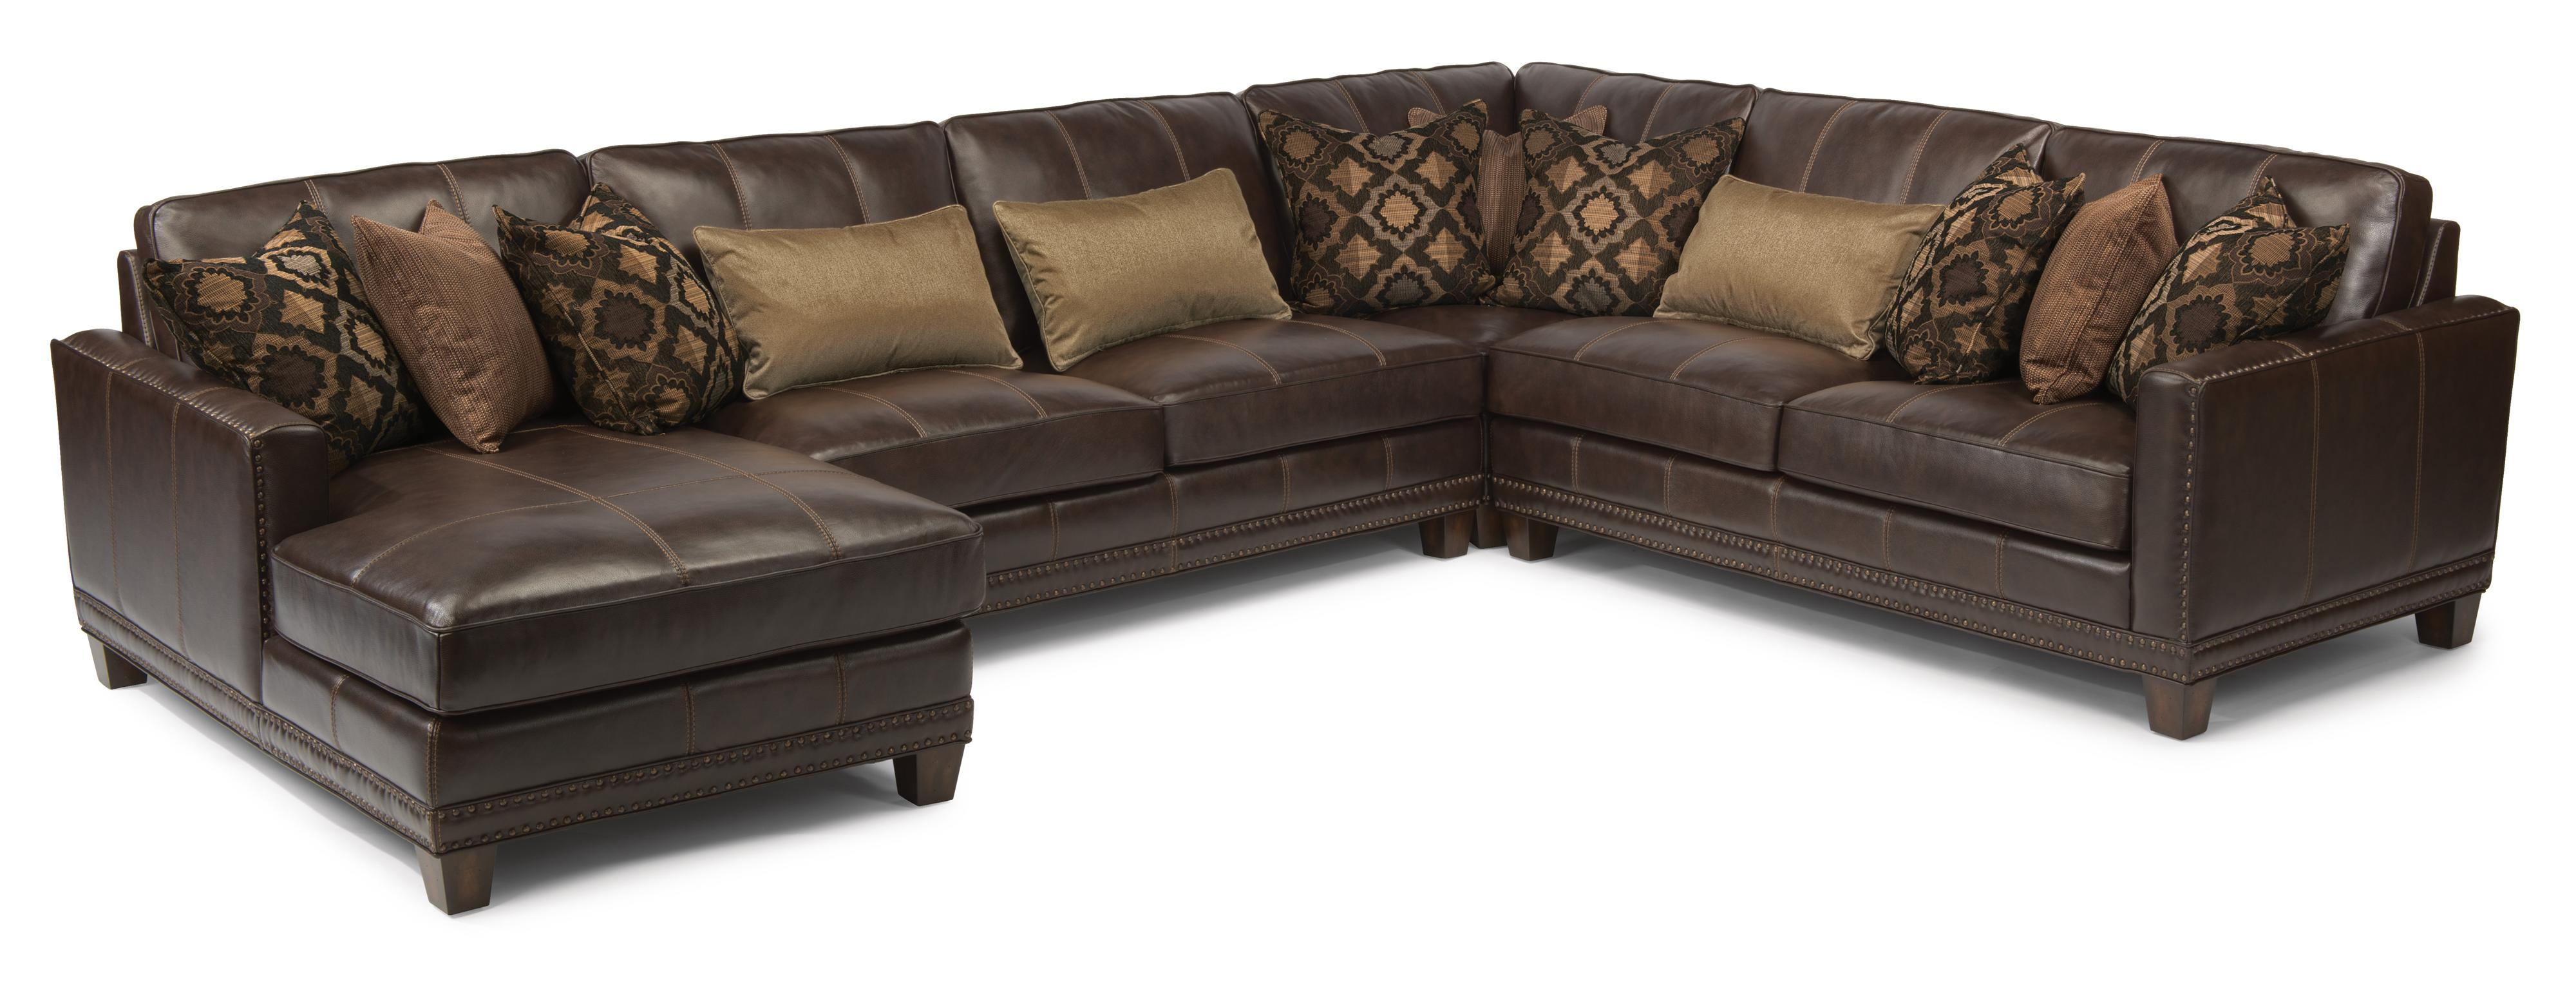 Latitudes - Port Royal 4 Pc Sectional Sofa by Flexsteel at Northeast Factory Direct